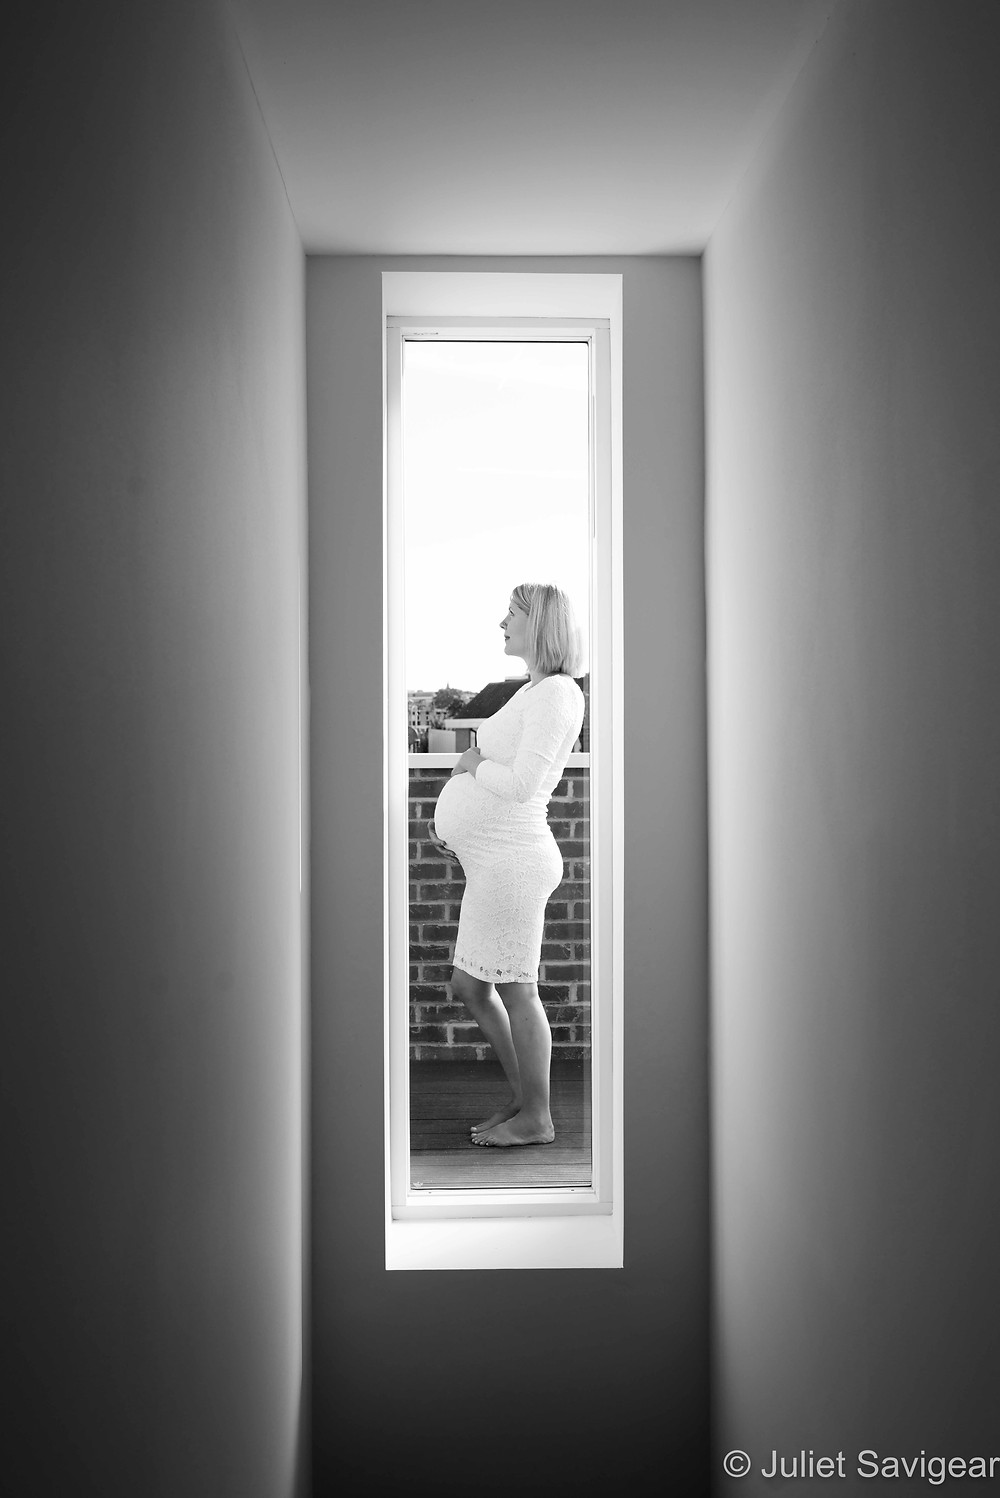 Through The Window - Maternity Photography, Tooting Common